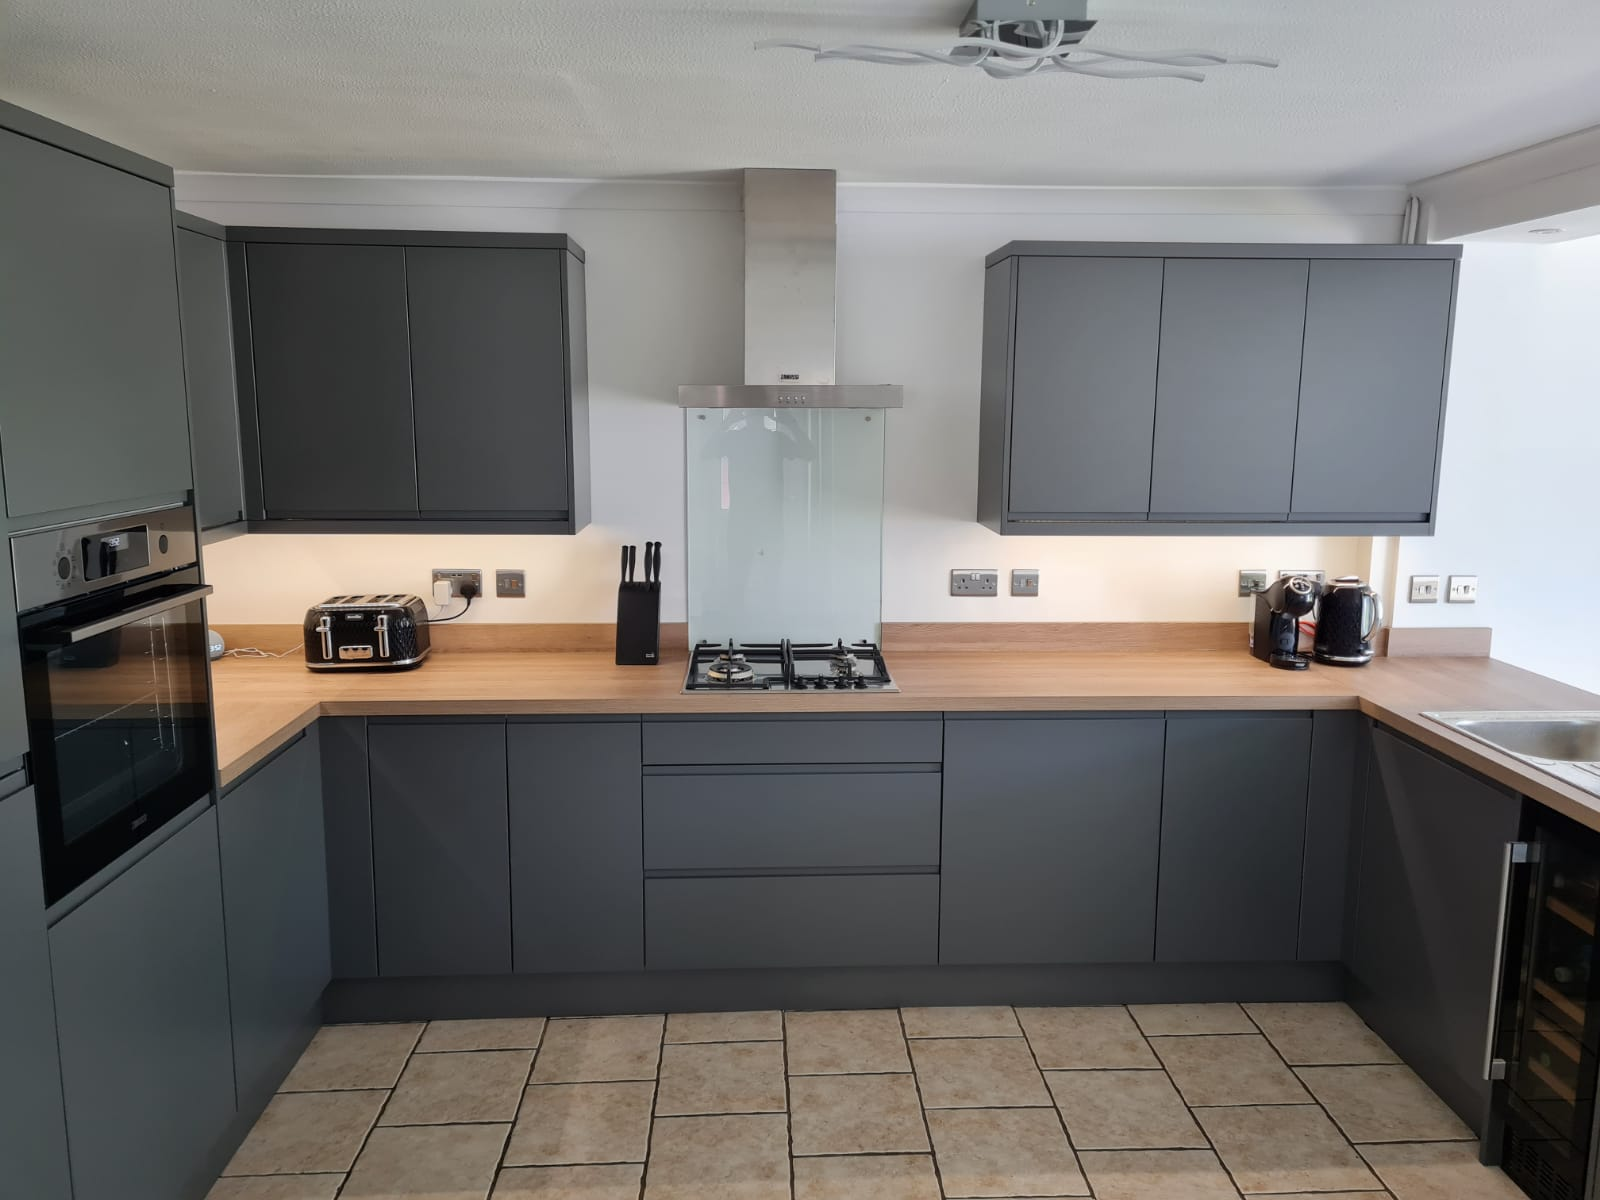 Monarch joinery kitchen fitting